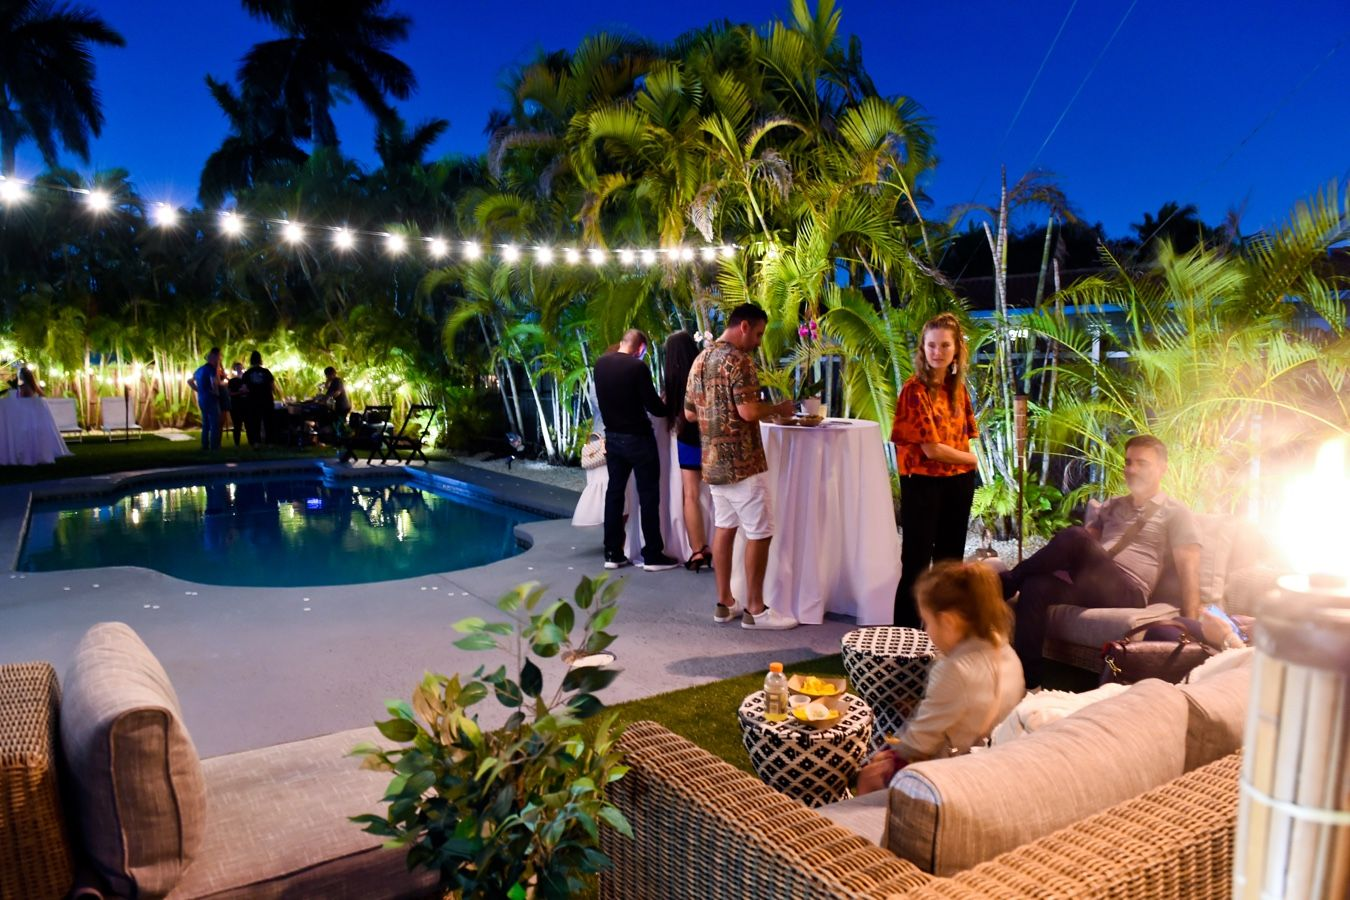 backyard party with lightening and palm trees